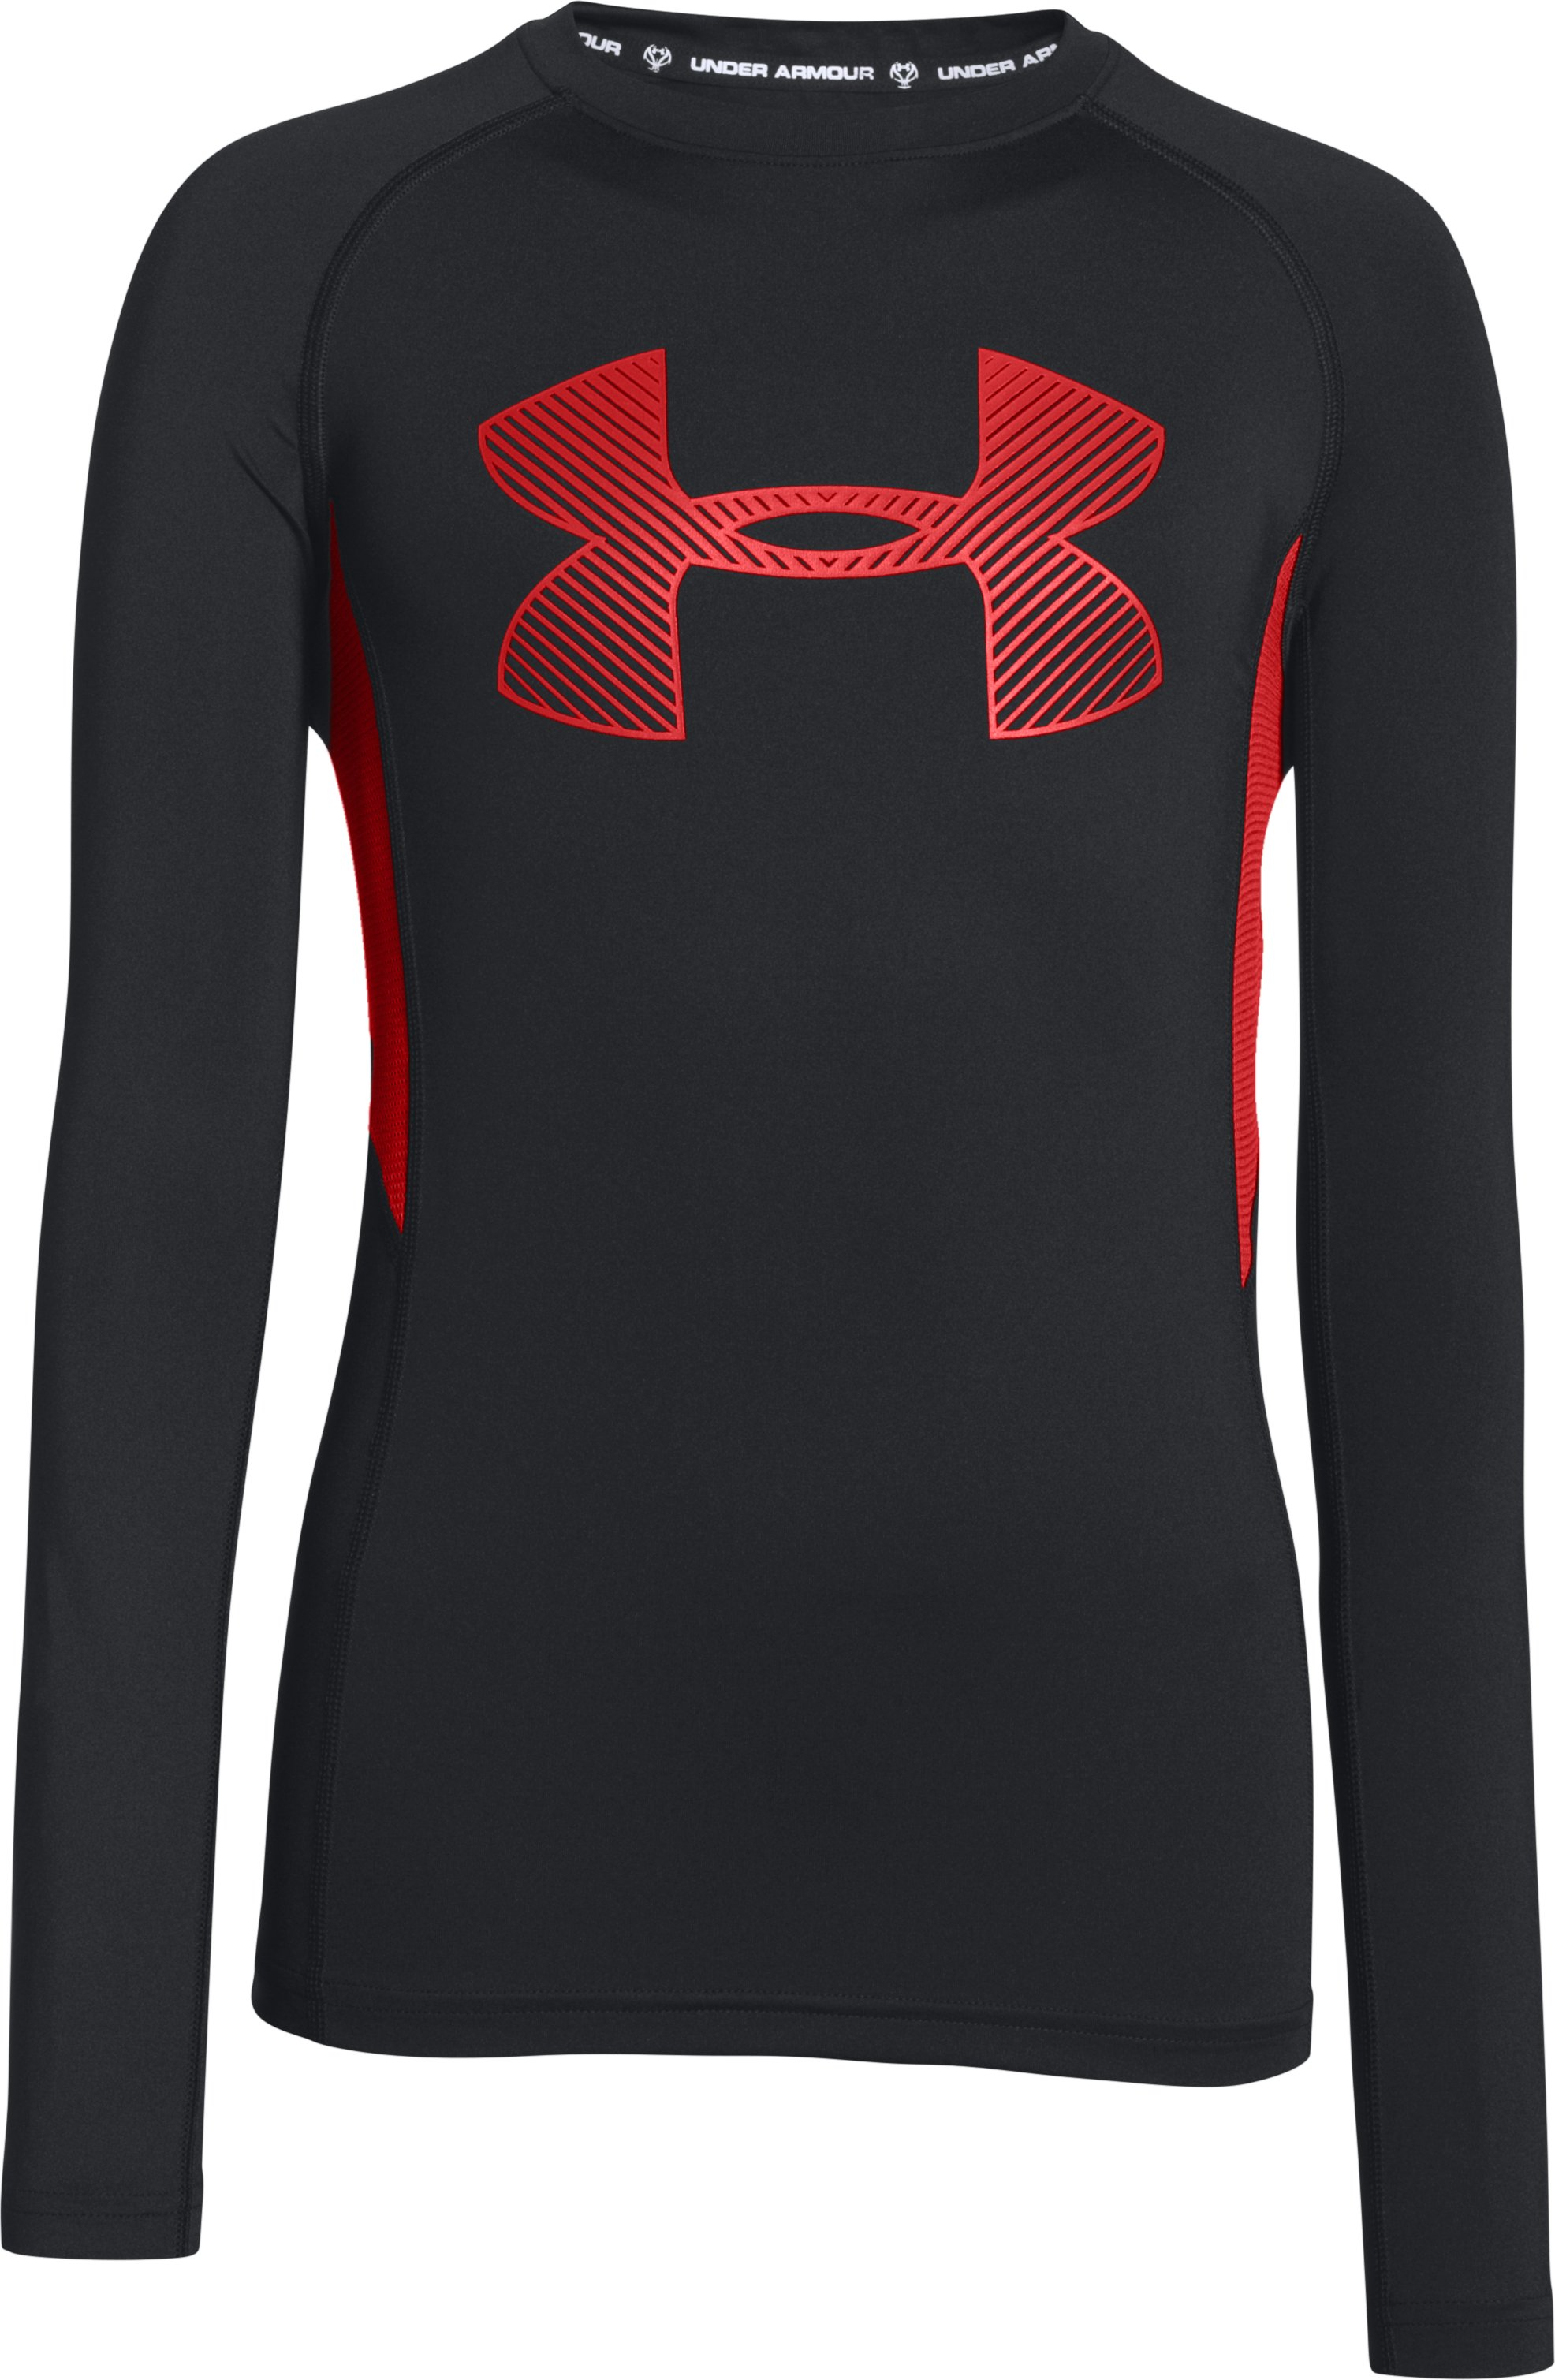 Boys' UA HeatGear® Armour Up Fadeaway Fitted Long Sleeve Shirt, Black , zoomed image